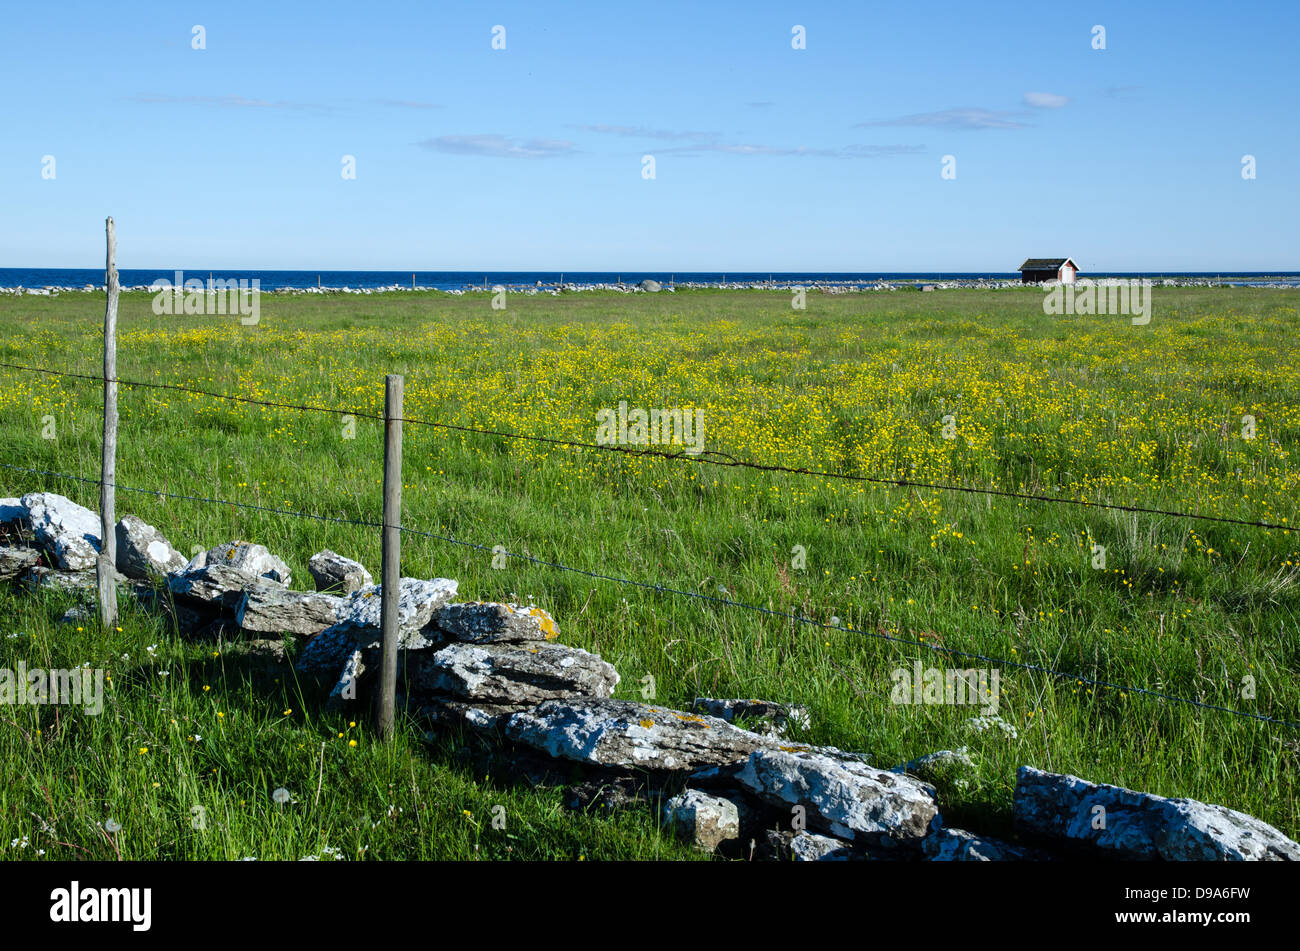 Coastal view with green field and yellow flowers at the island Oland in Sweden. - Stock Image